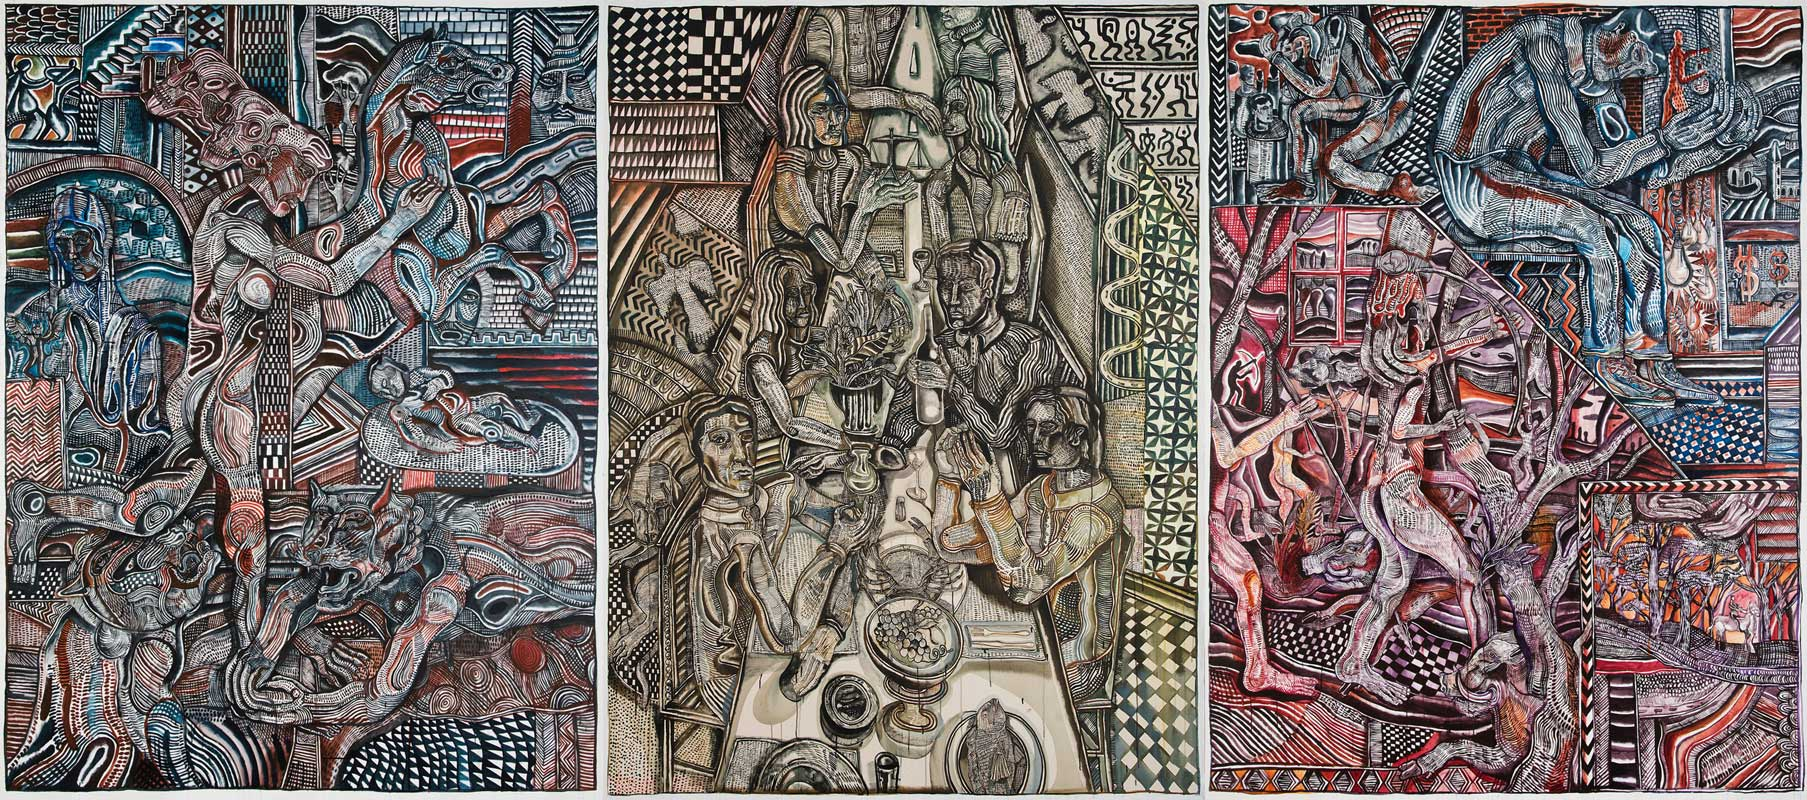 Zio Ziegler, The Senses (triptich), 2015, Mixed Media On Three Canvas, 244x183 Cm (each)